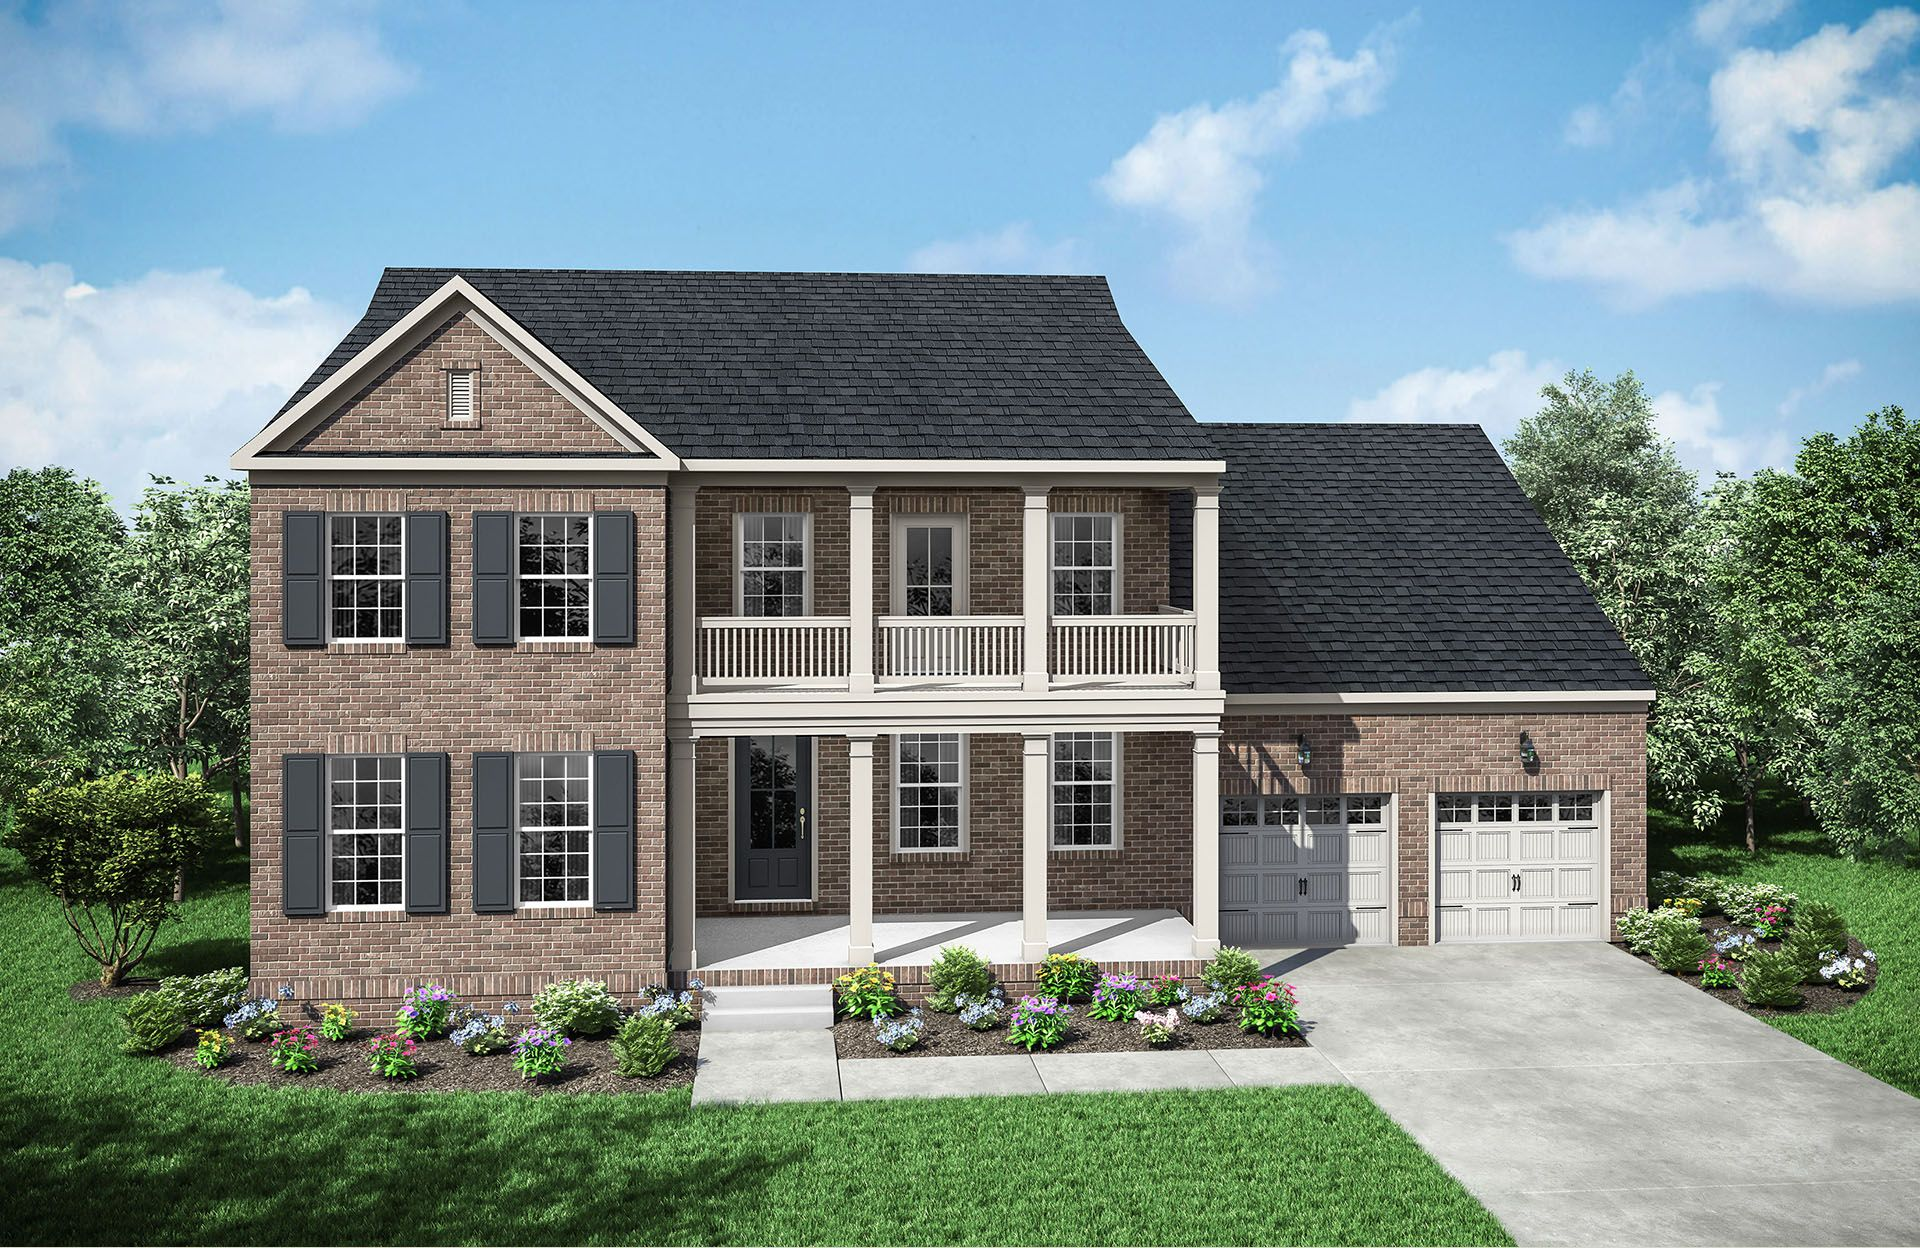 5 Drees Homes Communities In Hendersonville Tn